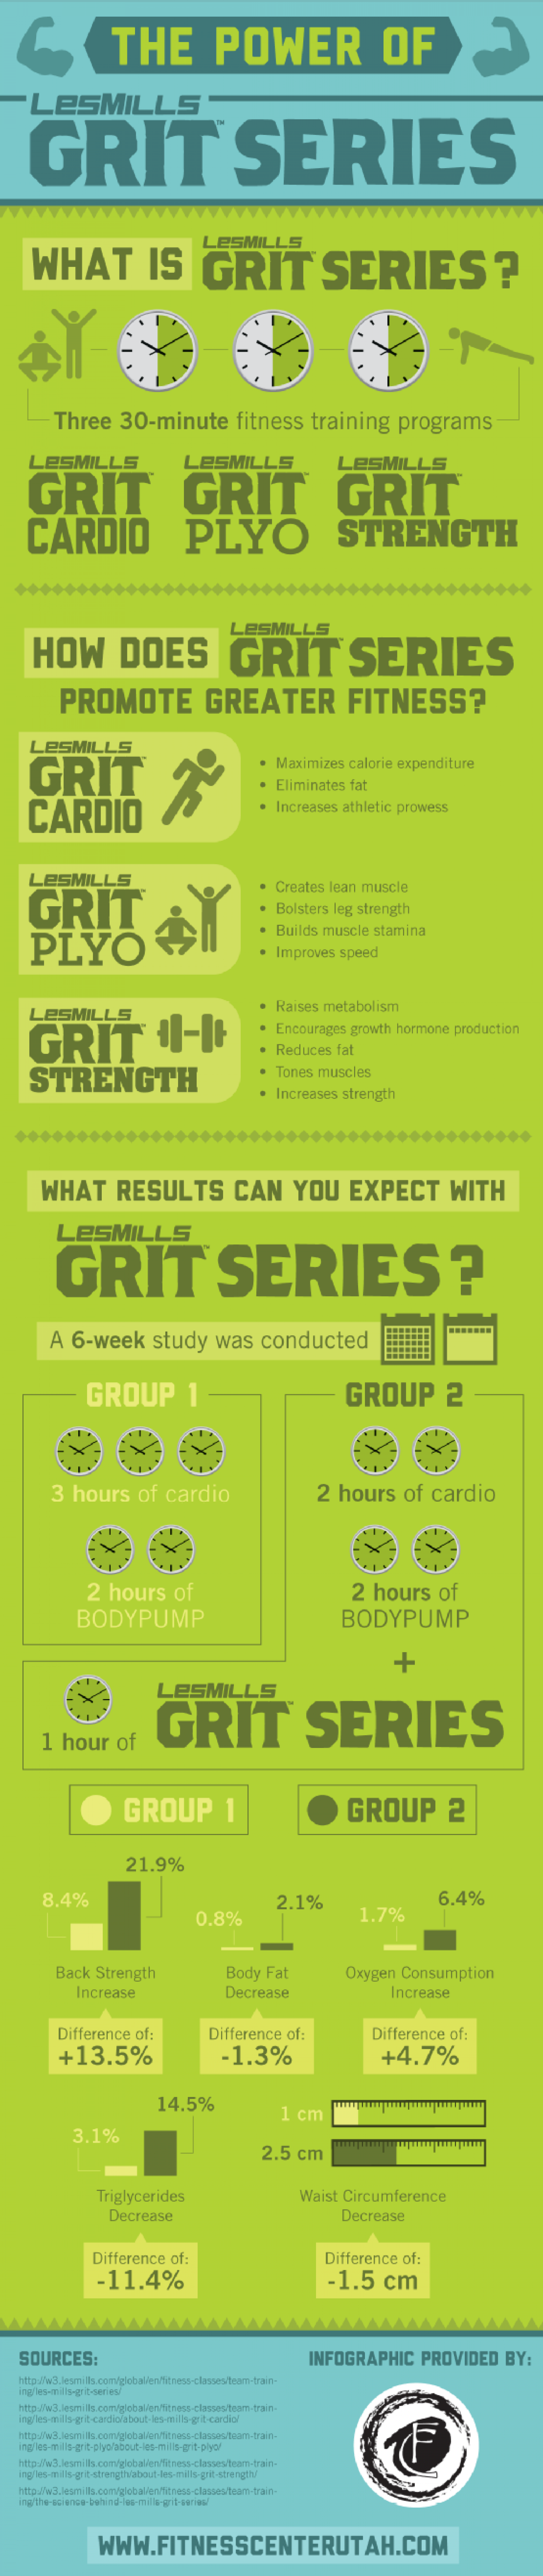 The Power of Les Mills GRIT Series Infographic